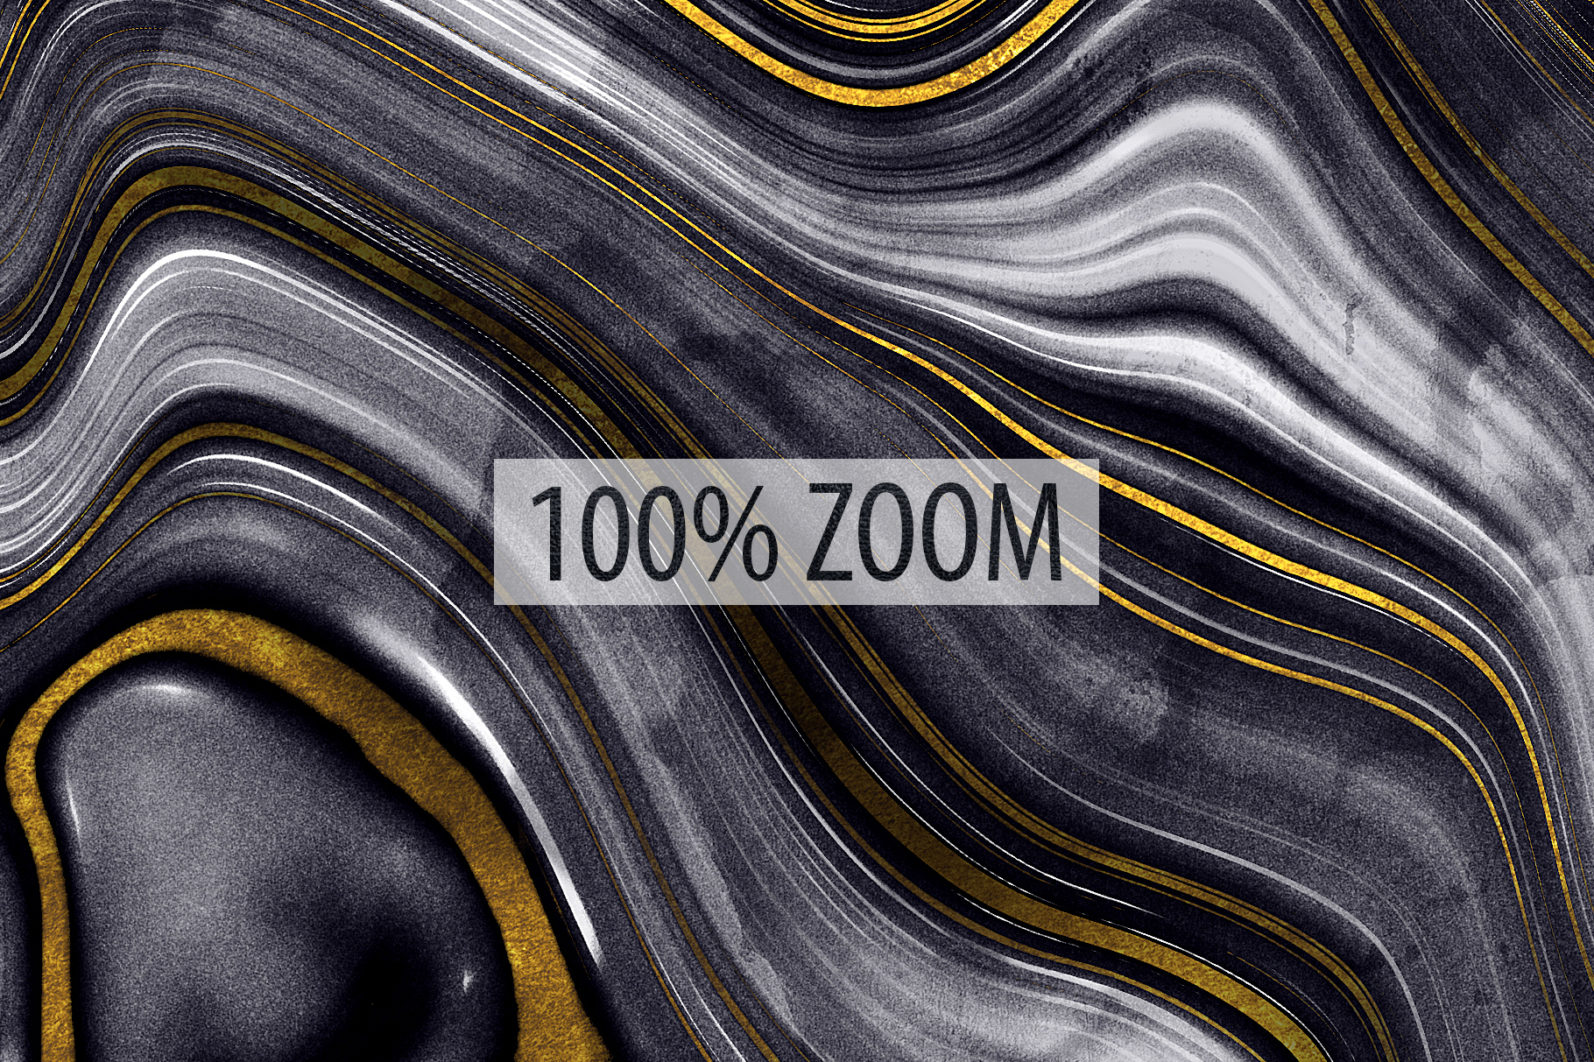 10 Agate Stone Digital Papers - Gold Veined Geode Textures - 05 gemstone digital papers -